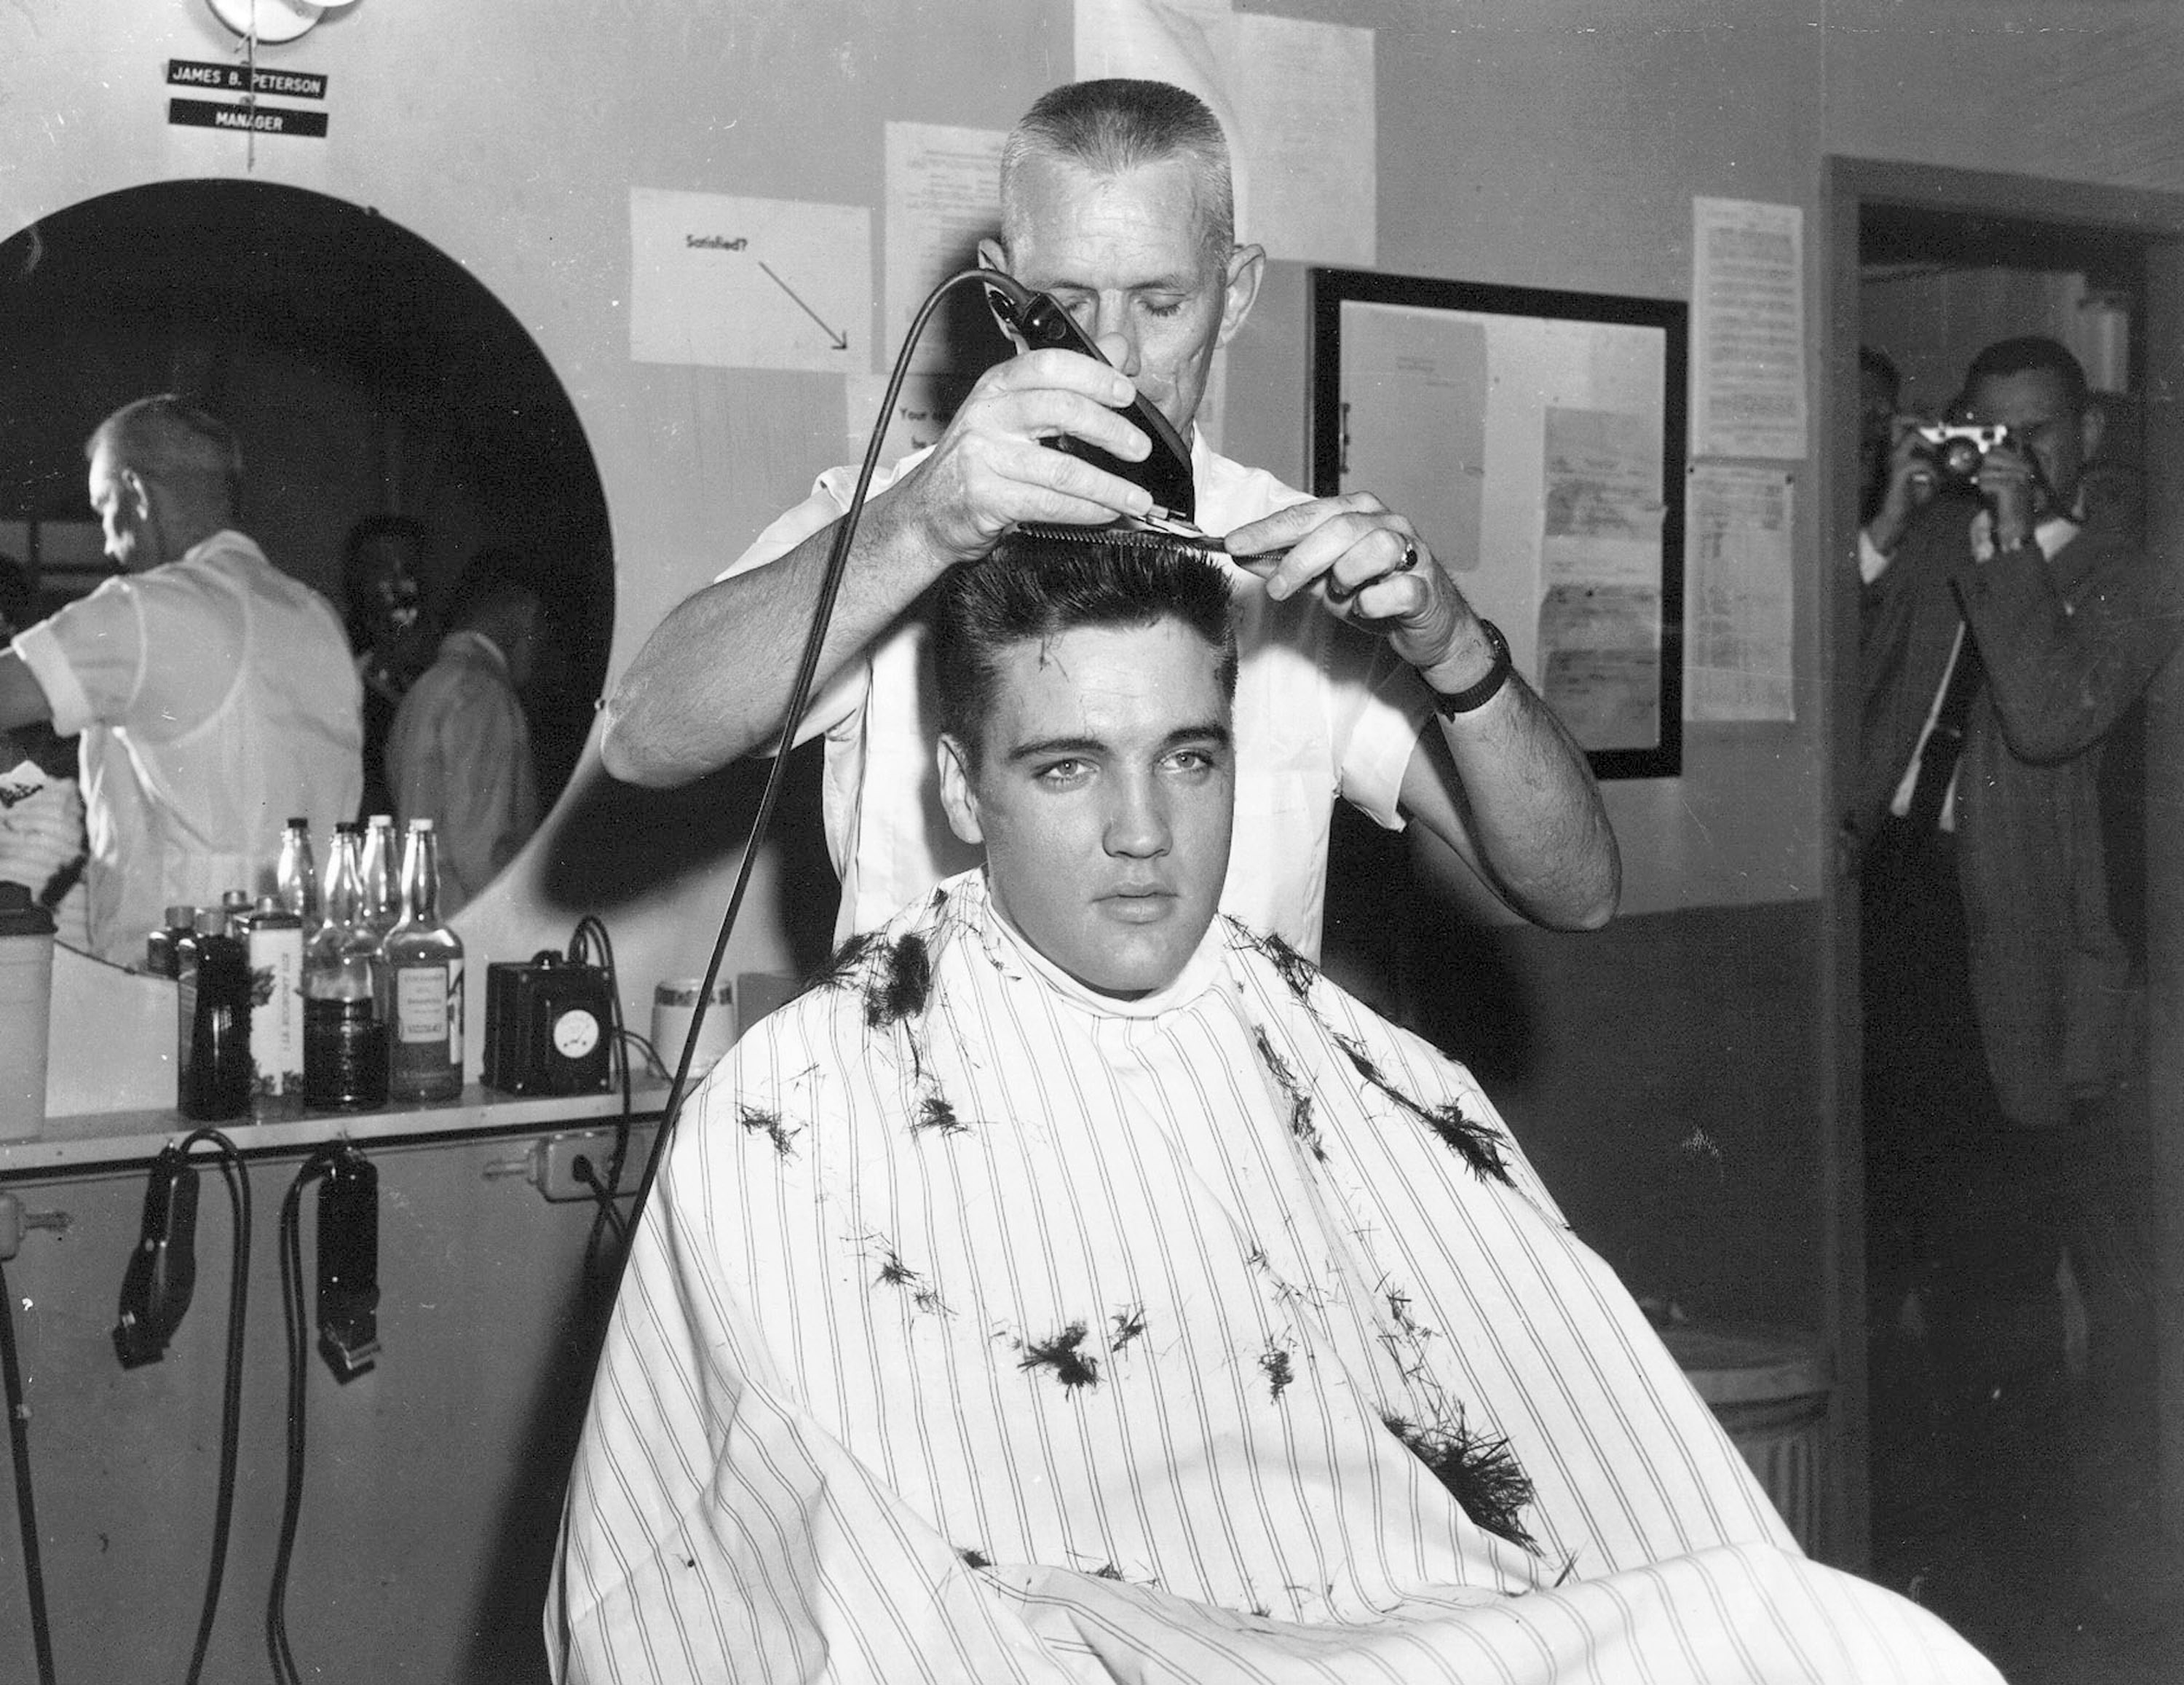 Sixty years ago, Elvis Presley was drafted into the Army. He was never the same. - The Washington Post